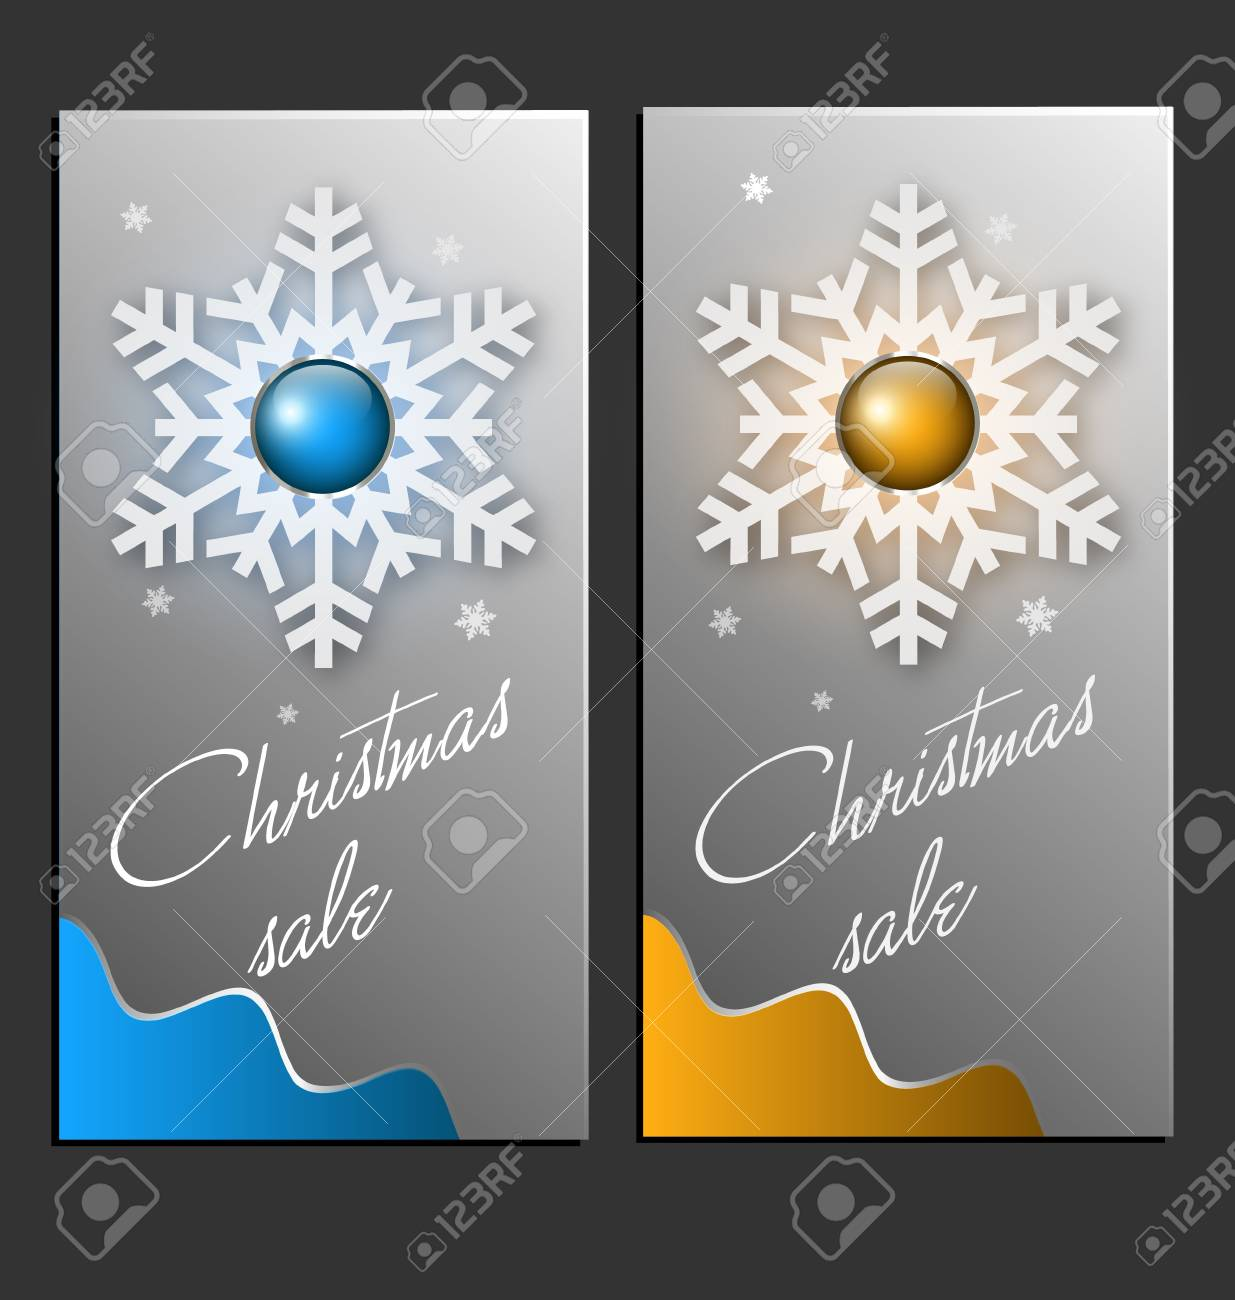 illustration of Christmas sale cards Stock Vector - 16080553